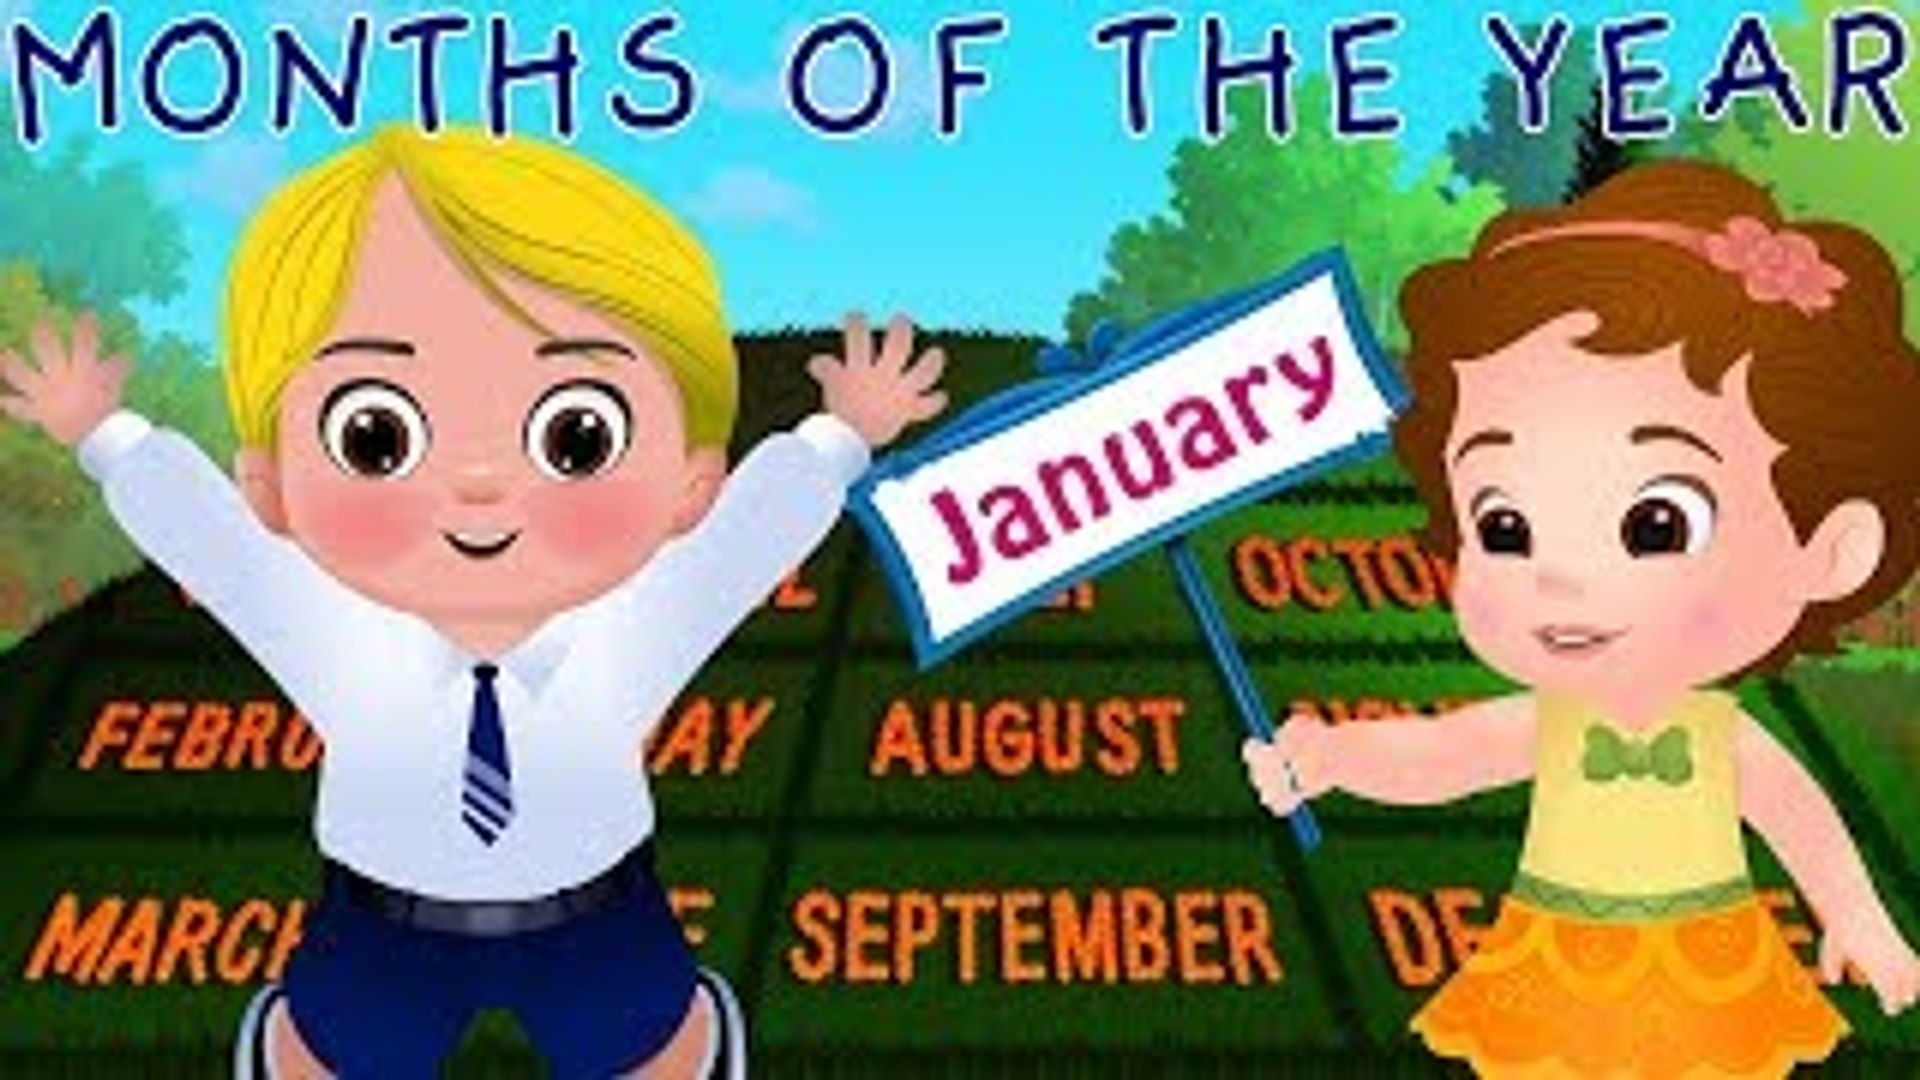 Months of the Year Song - January, February, March - Original Nursery Rhymes for Kids by Fun Tv